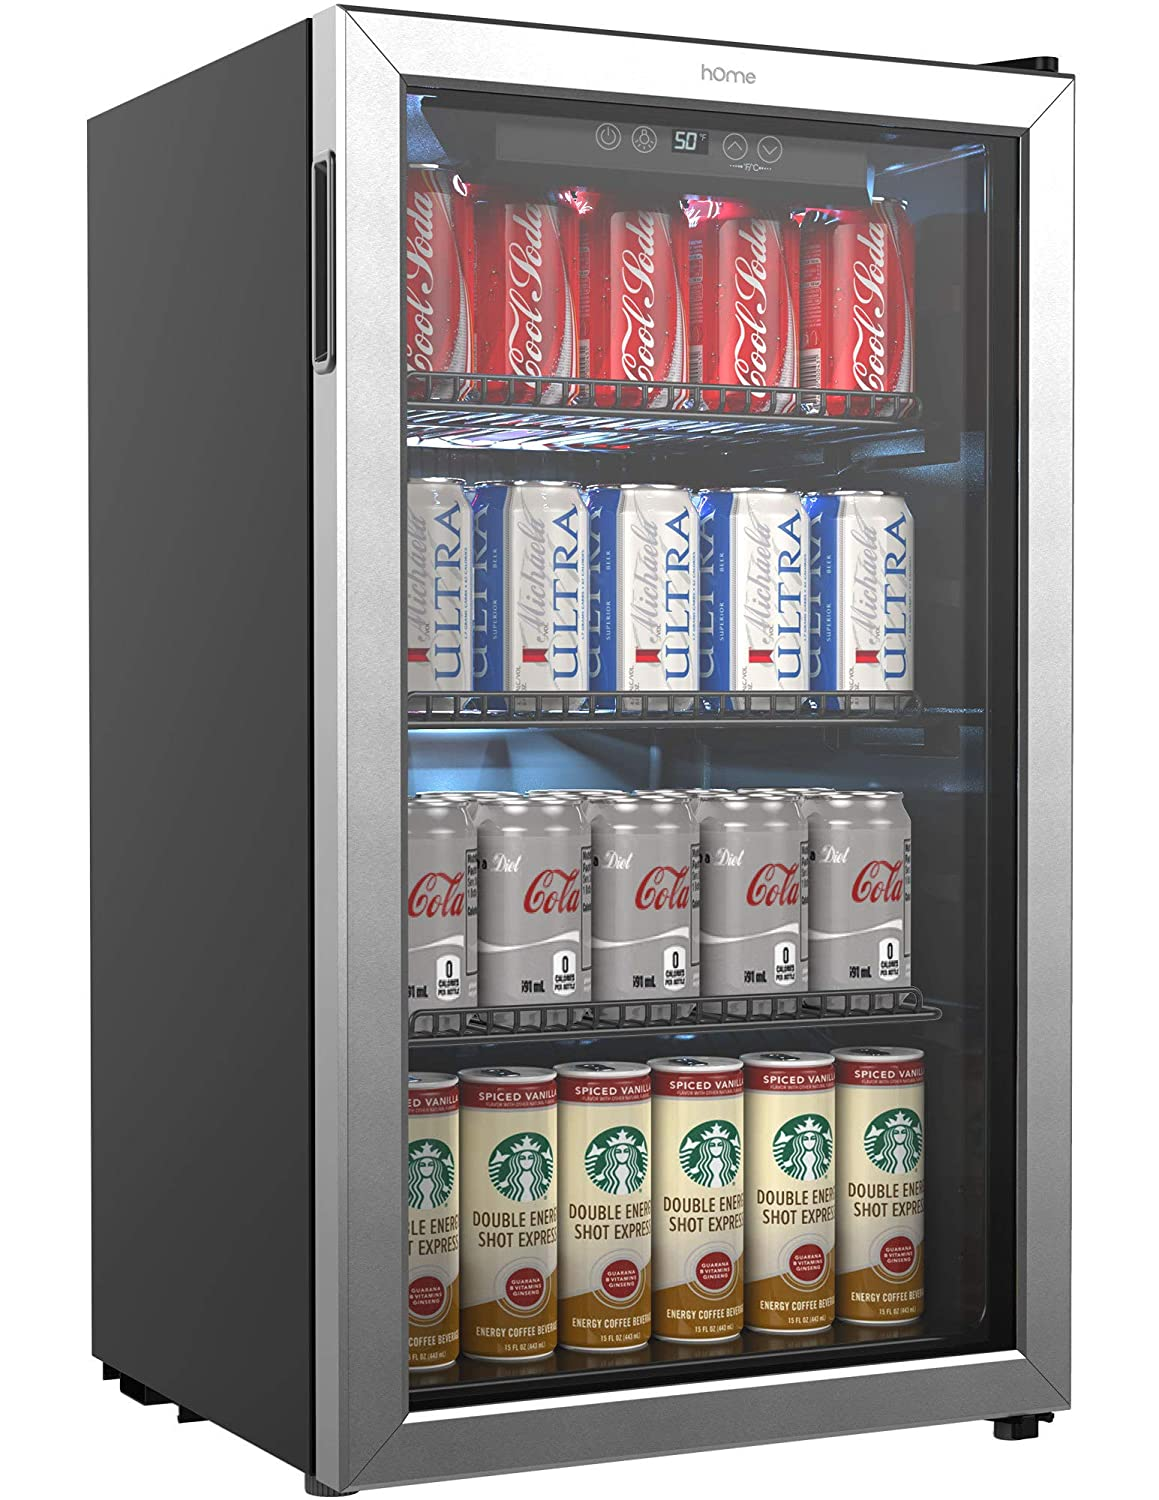 Amazon Homelabs Beverage Refrigerator And Cooler Mini Fridge